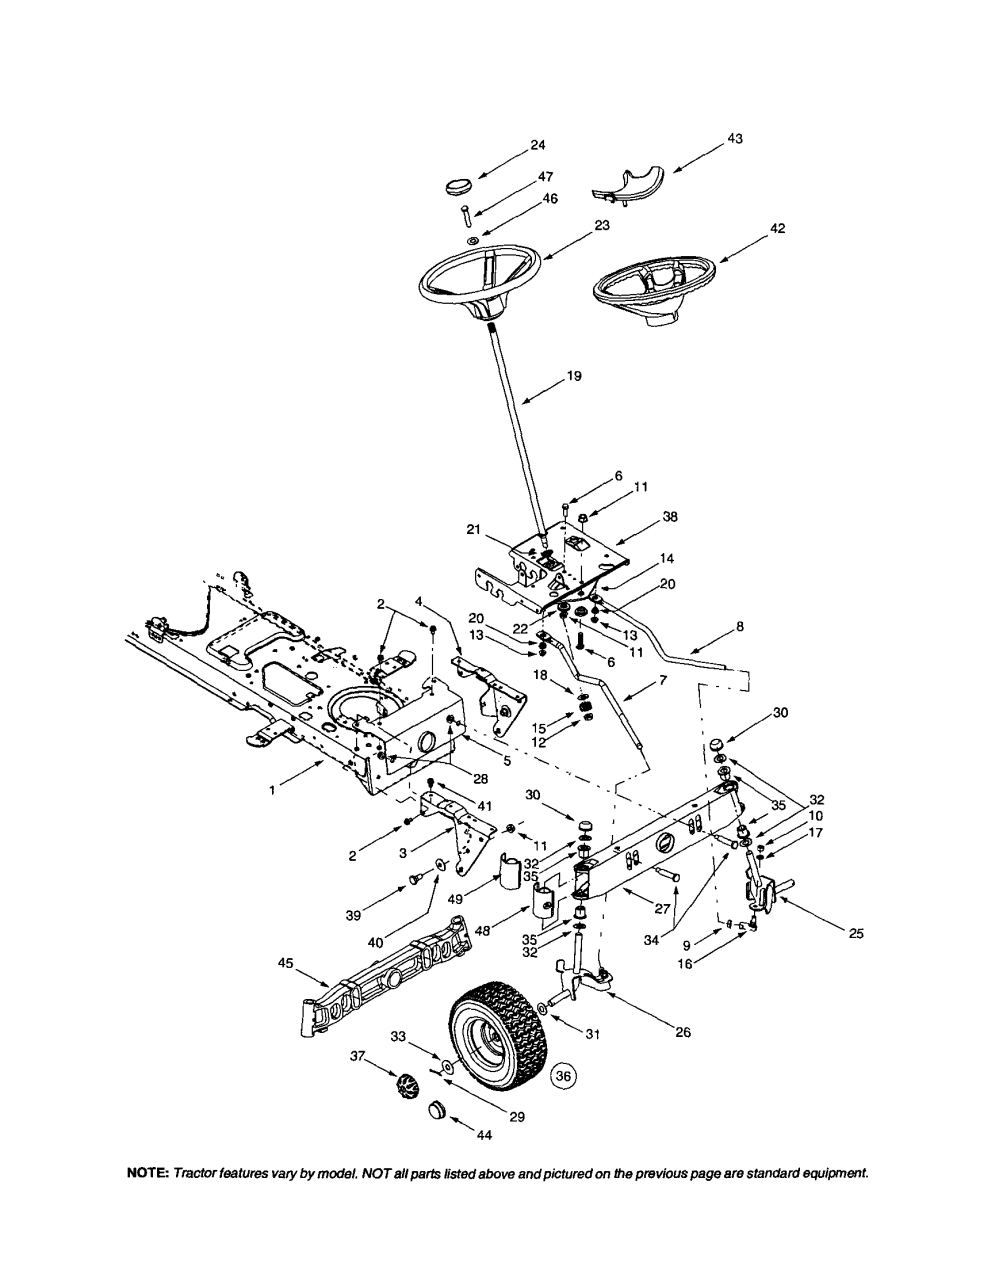 medium resolution of mtd model 13af608g062 lawn tractor genuine parts weed eater parts diagrams mtd parts diagrams